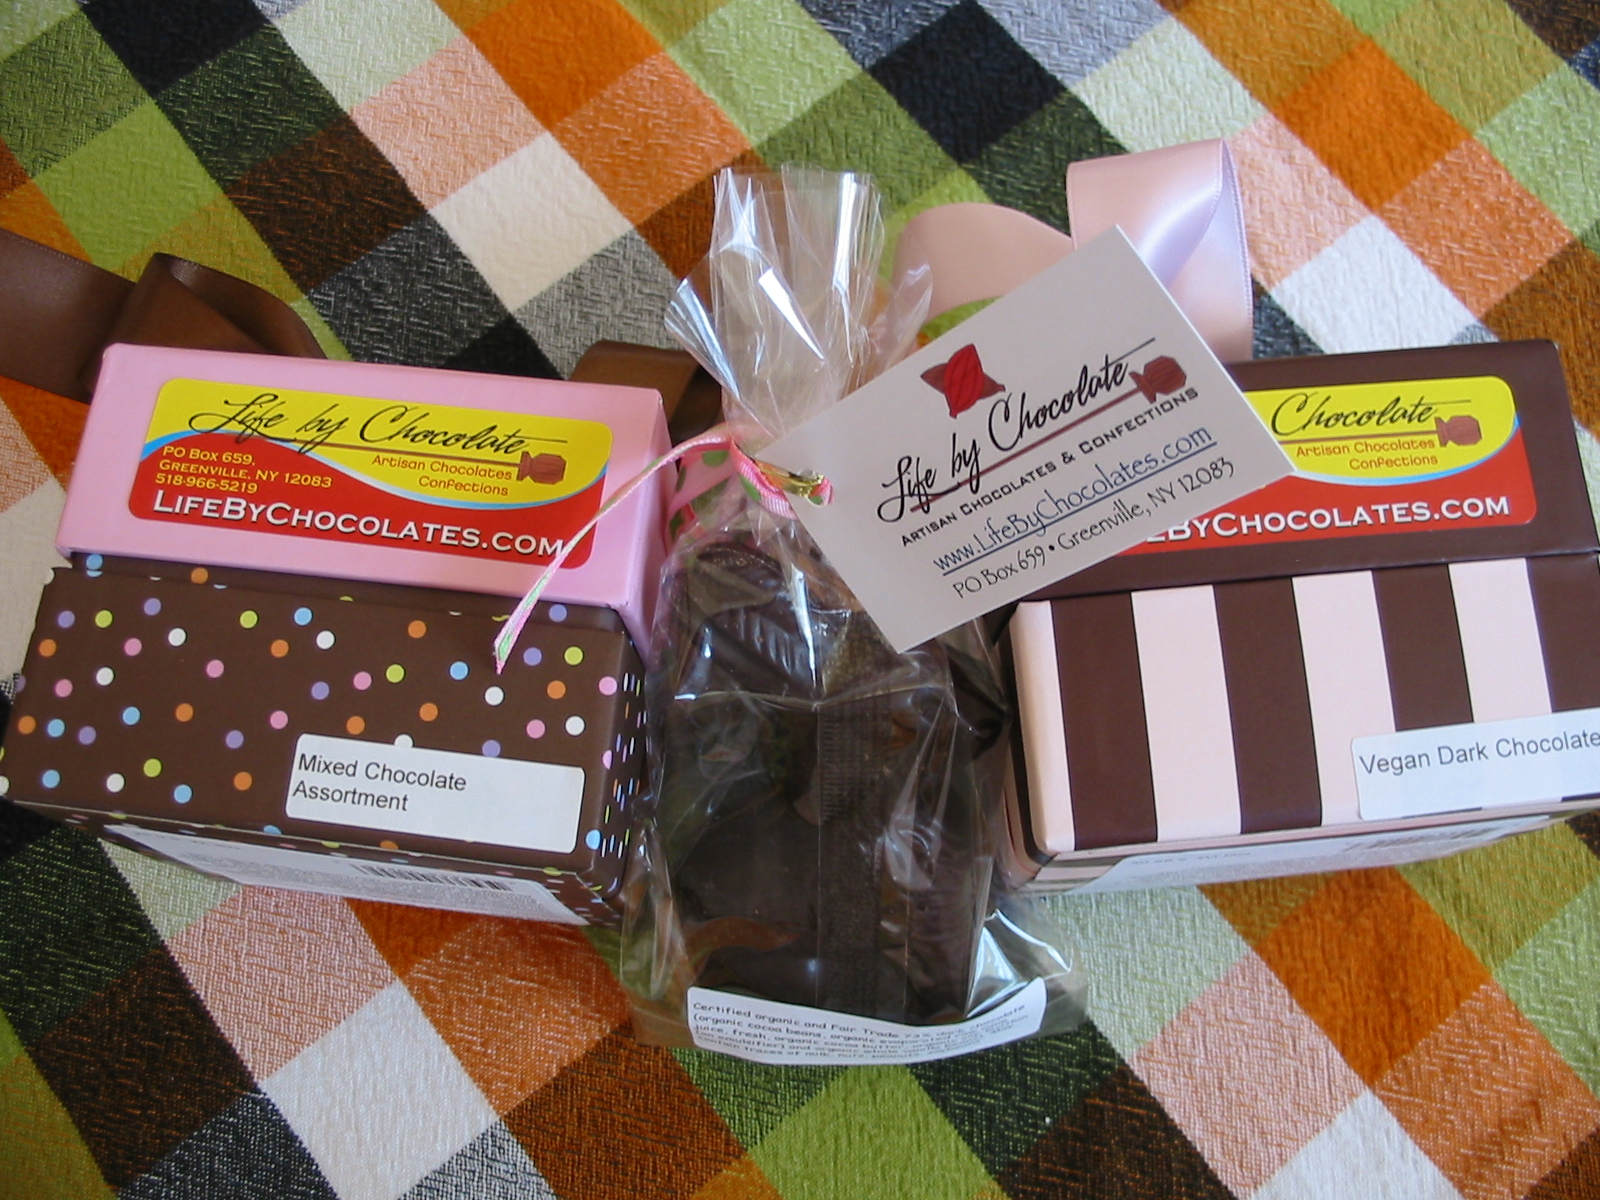 The chocolate cult easter gifts life by chocolate in total for easter they sent us two boxes and a chocolate bunny this is part of their rather large easter collection you can see online negle Choice Image